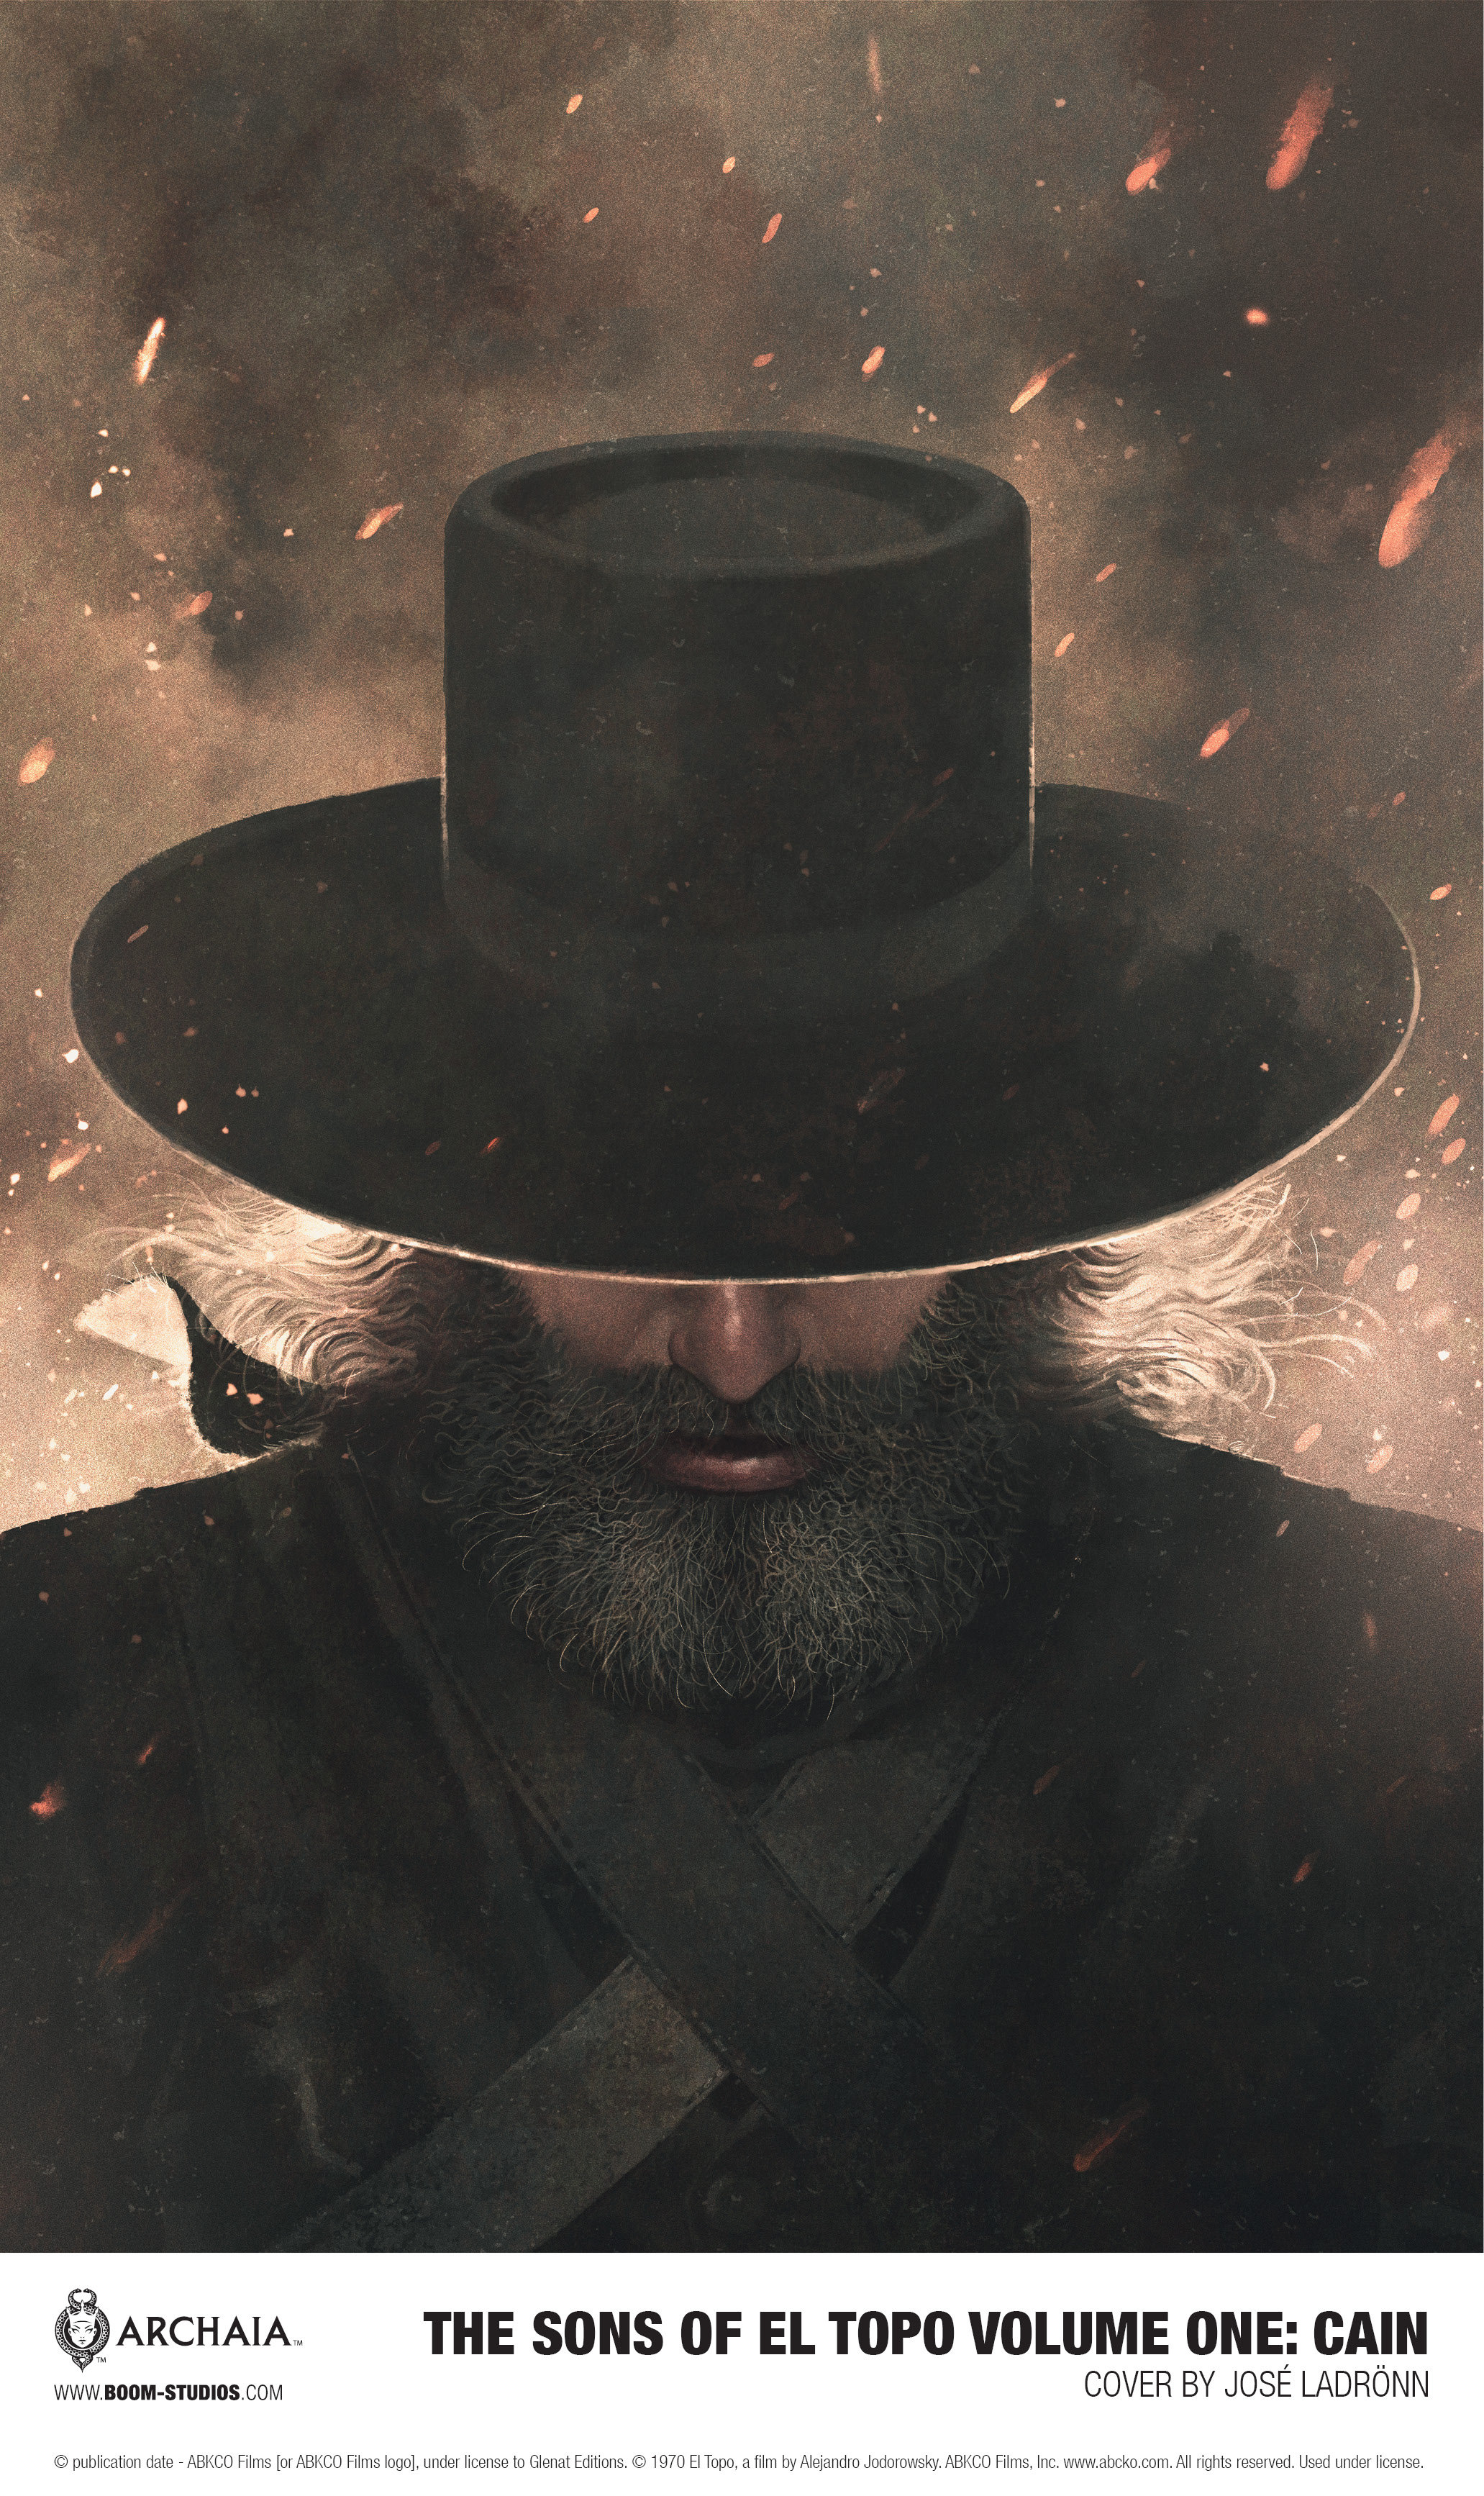 The Sons Of El Topo Vol. 1: Cain 2018